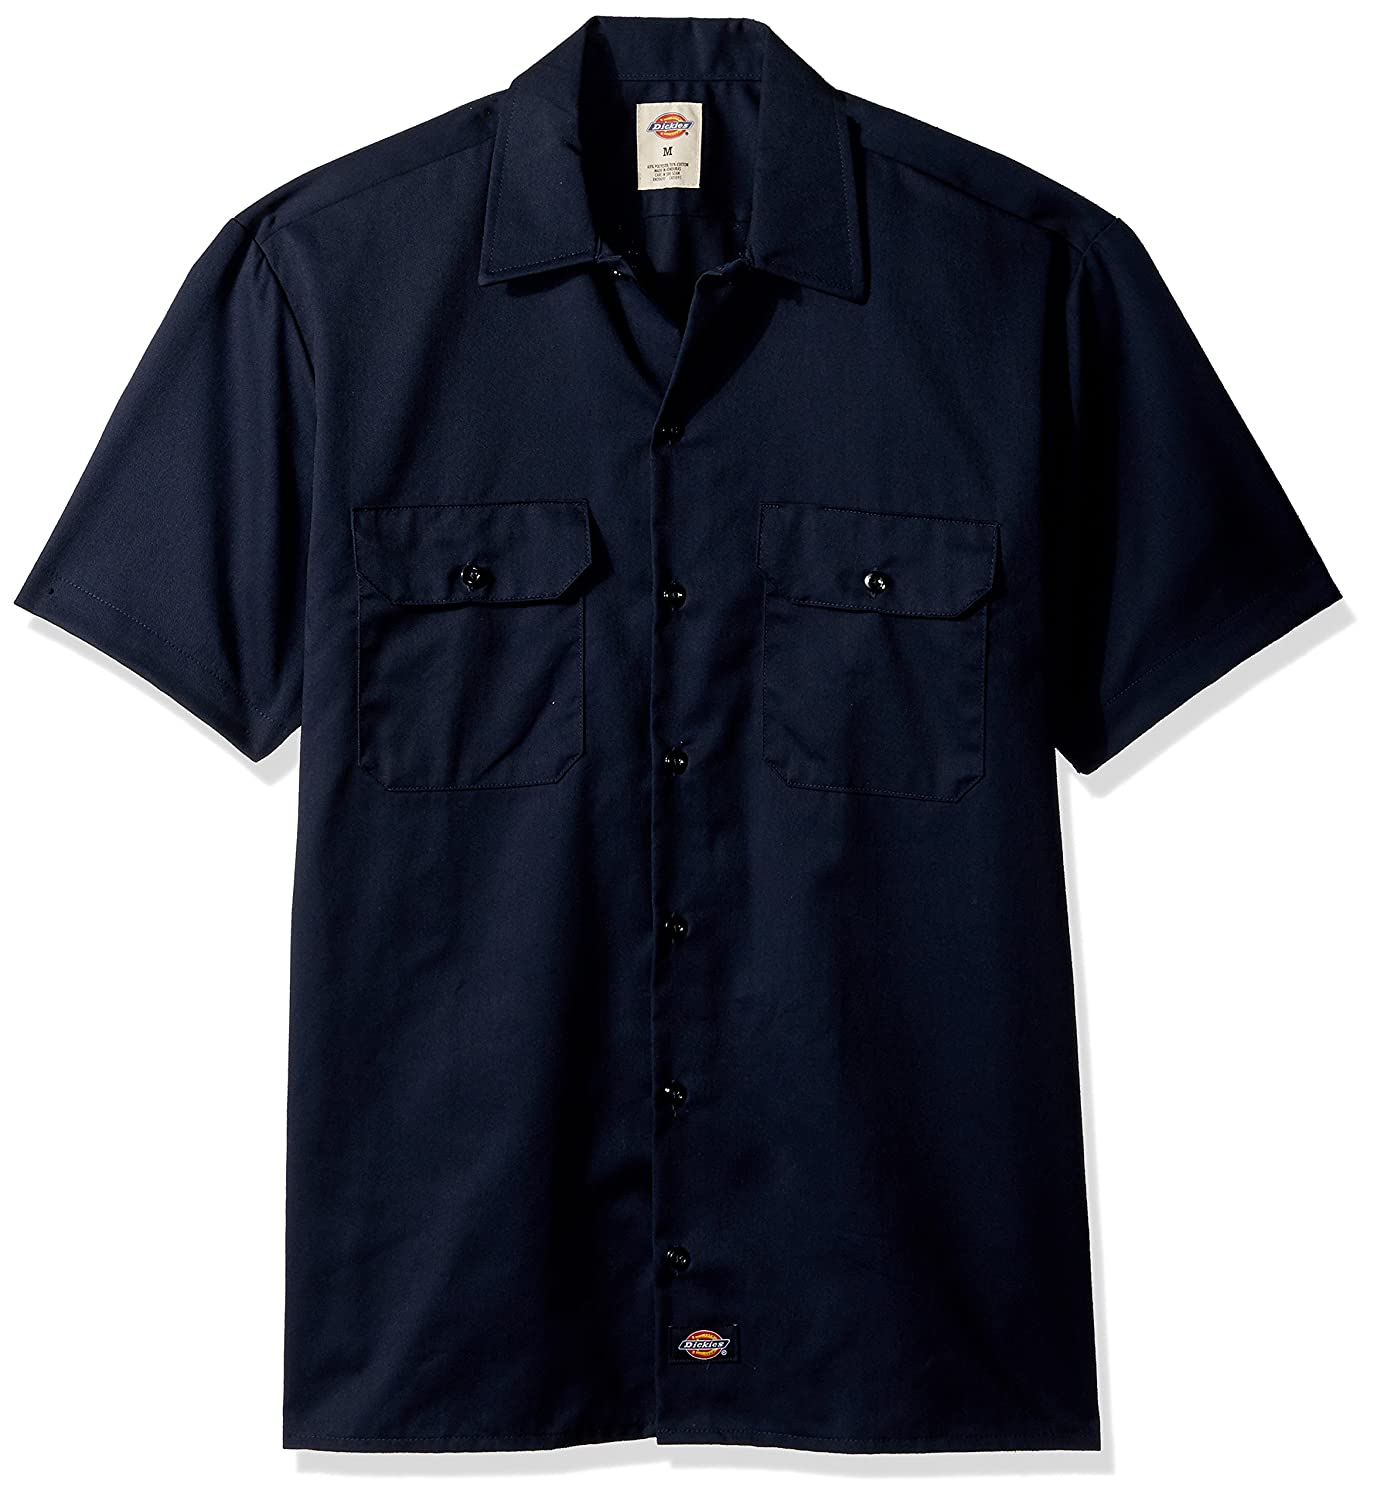 Dickies Men's Short Sleeve Work Workwear Shirt Dickies Men' s Short Sleeve Work Workwear Shirt